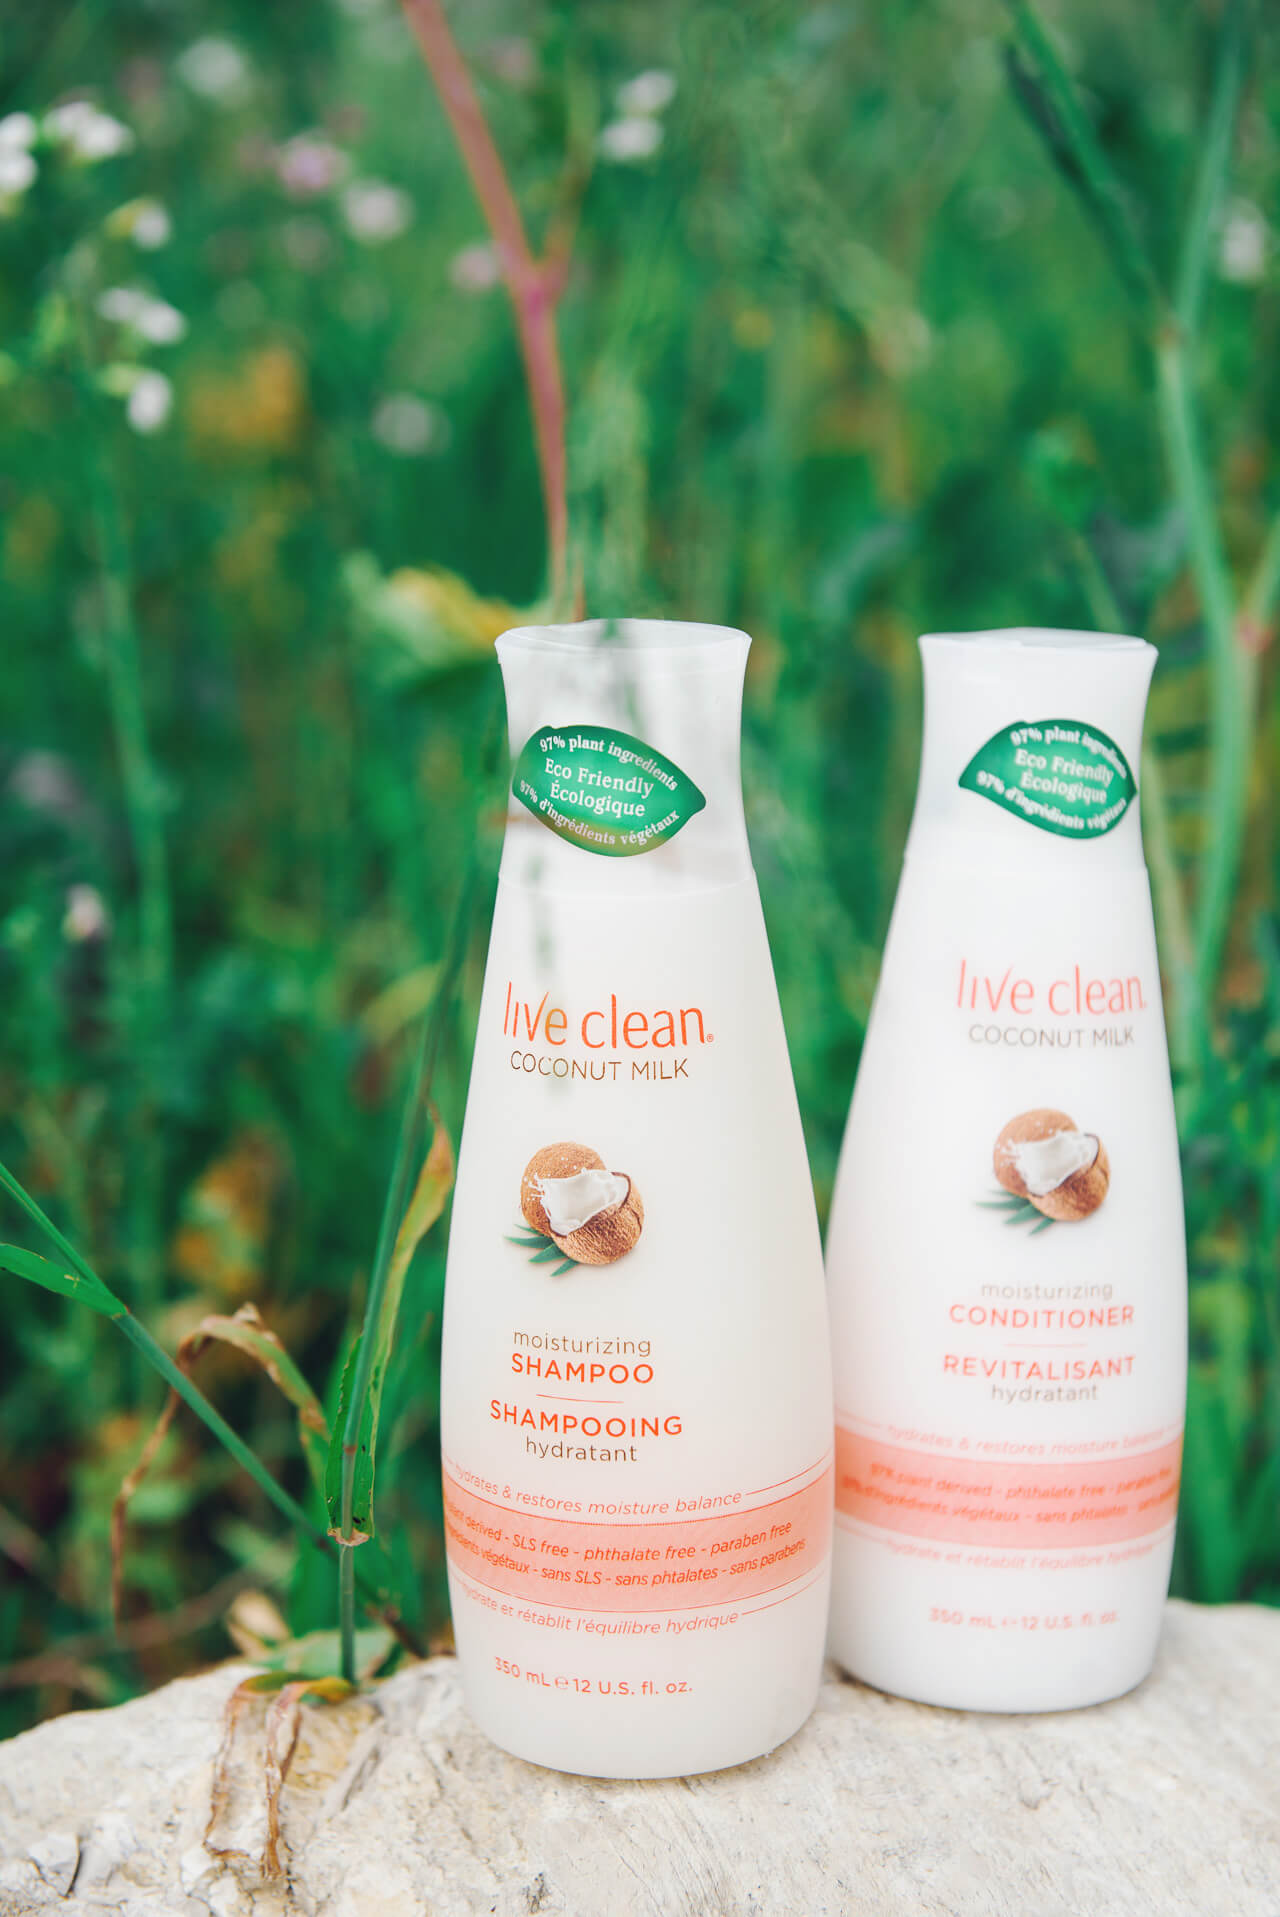 natural shampoo and conditioner option!